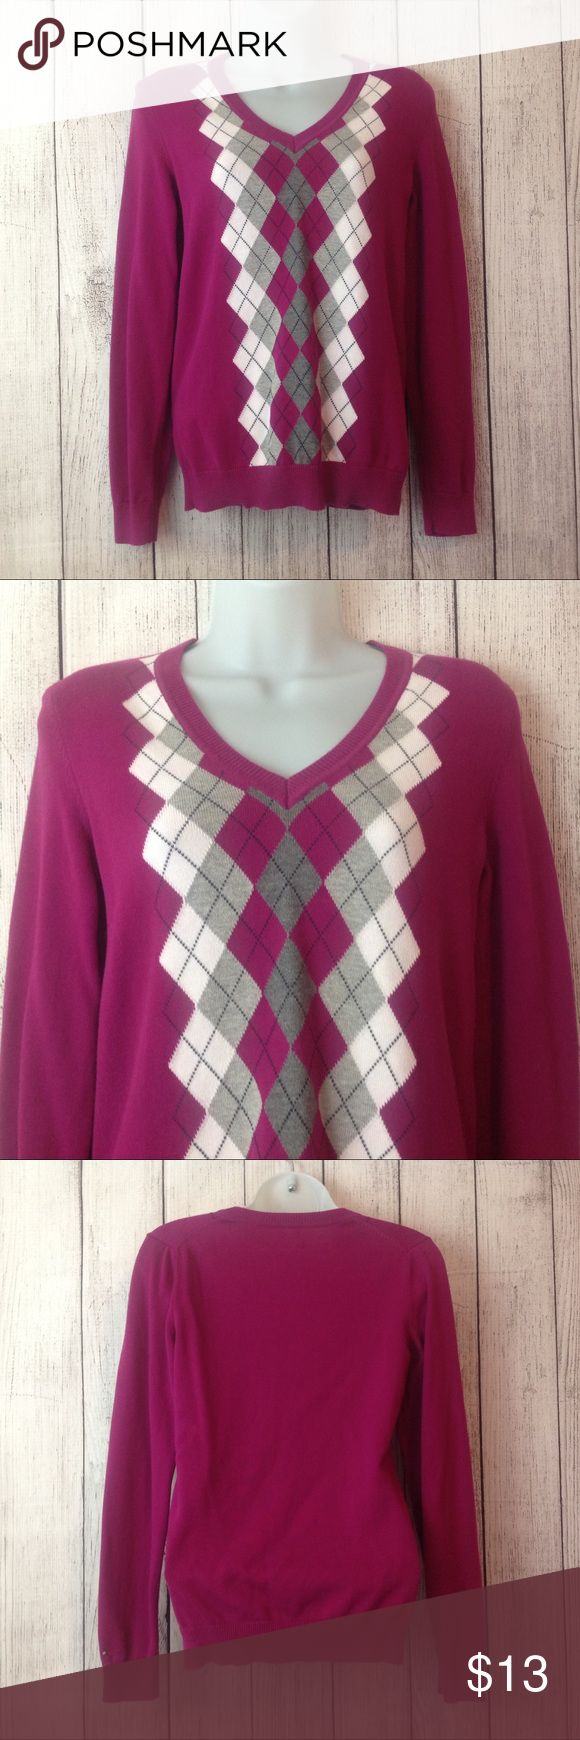 "Tommy Hilfiger Summer Sweater Maker: Tommy Hilfiger  ♥ Material: Cotton Blend ♥ Color: Fuschia ♥ Measured Size: Pit to pit- 17"" Pit to cuff- 18"" Shoulder to waist- 23""  ♥ Tag Size:  S ♥ PLEASE CHECK YOUR ACTUAL MEASUREMENTS TO MAKE SURE IT IS THE RIGHT SIZE! THANKS!  ♥ Condition: Great Used Condition ♥ Item #: (office use only) D  Follow us for coupon codes!  INSTAGRAM-thehausofvintage1984 Twitter- @hov1984 Facebook- Intergalactic Haus of Vintage 1984 Tommy Hilfiger Sweaters V-Necks"